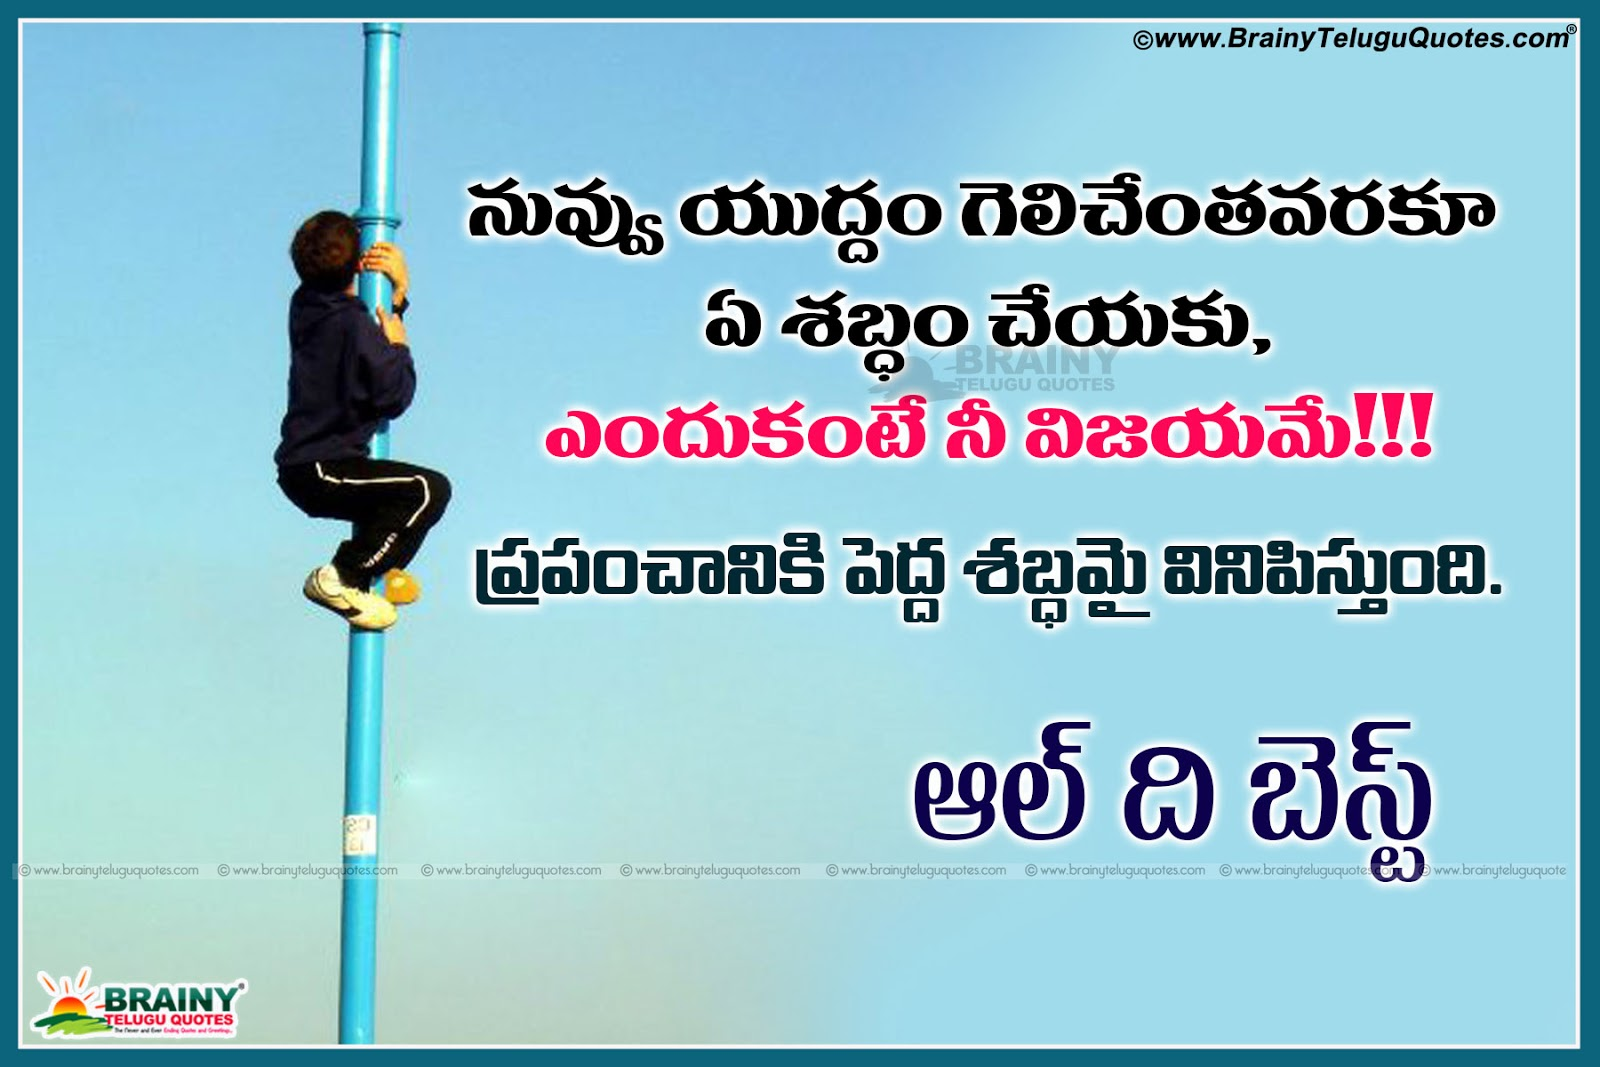 Best motivational all the best best off luck telugu quotes on life here is best of luck quotes in telugu wish you all the best quotes in kristyandbryce Image collections